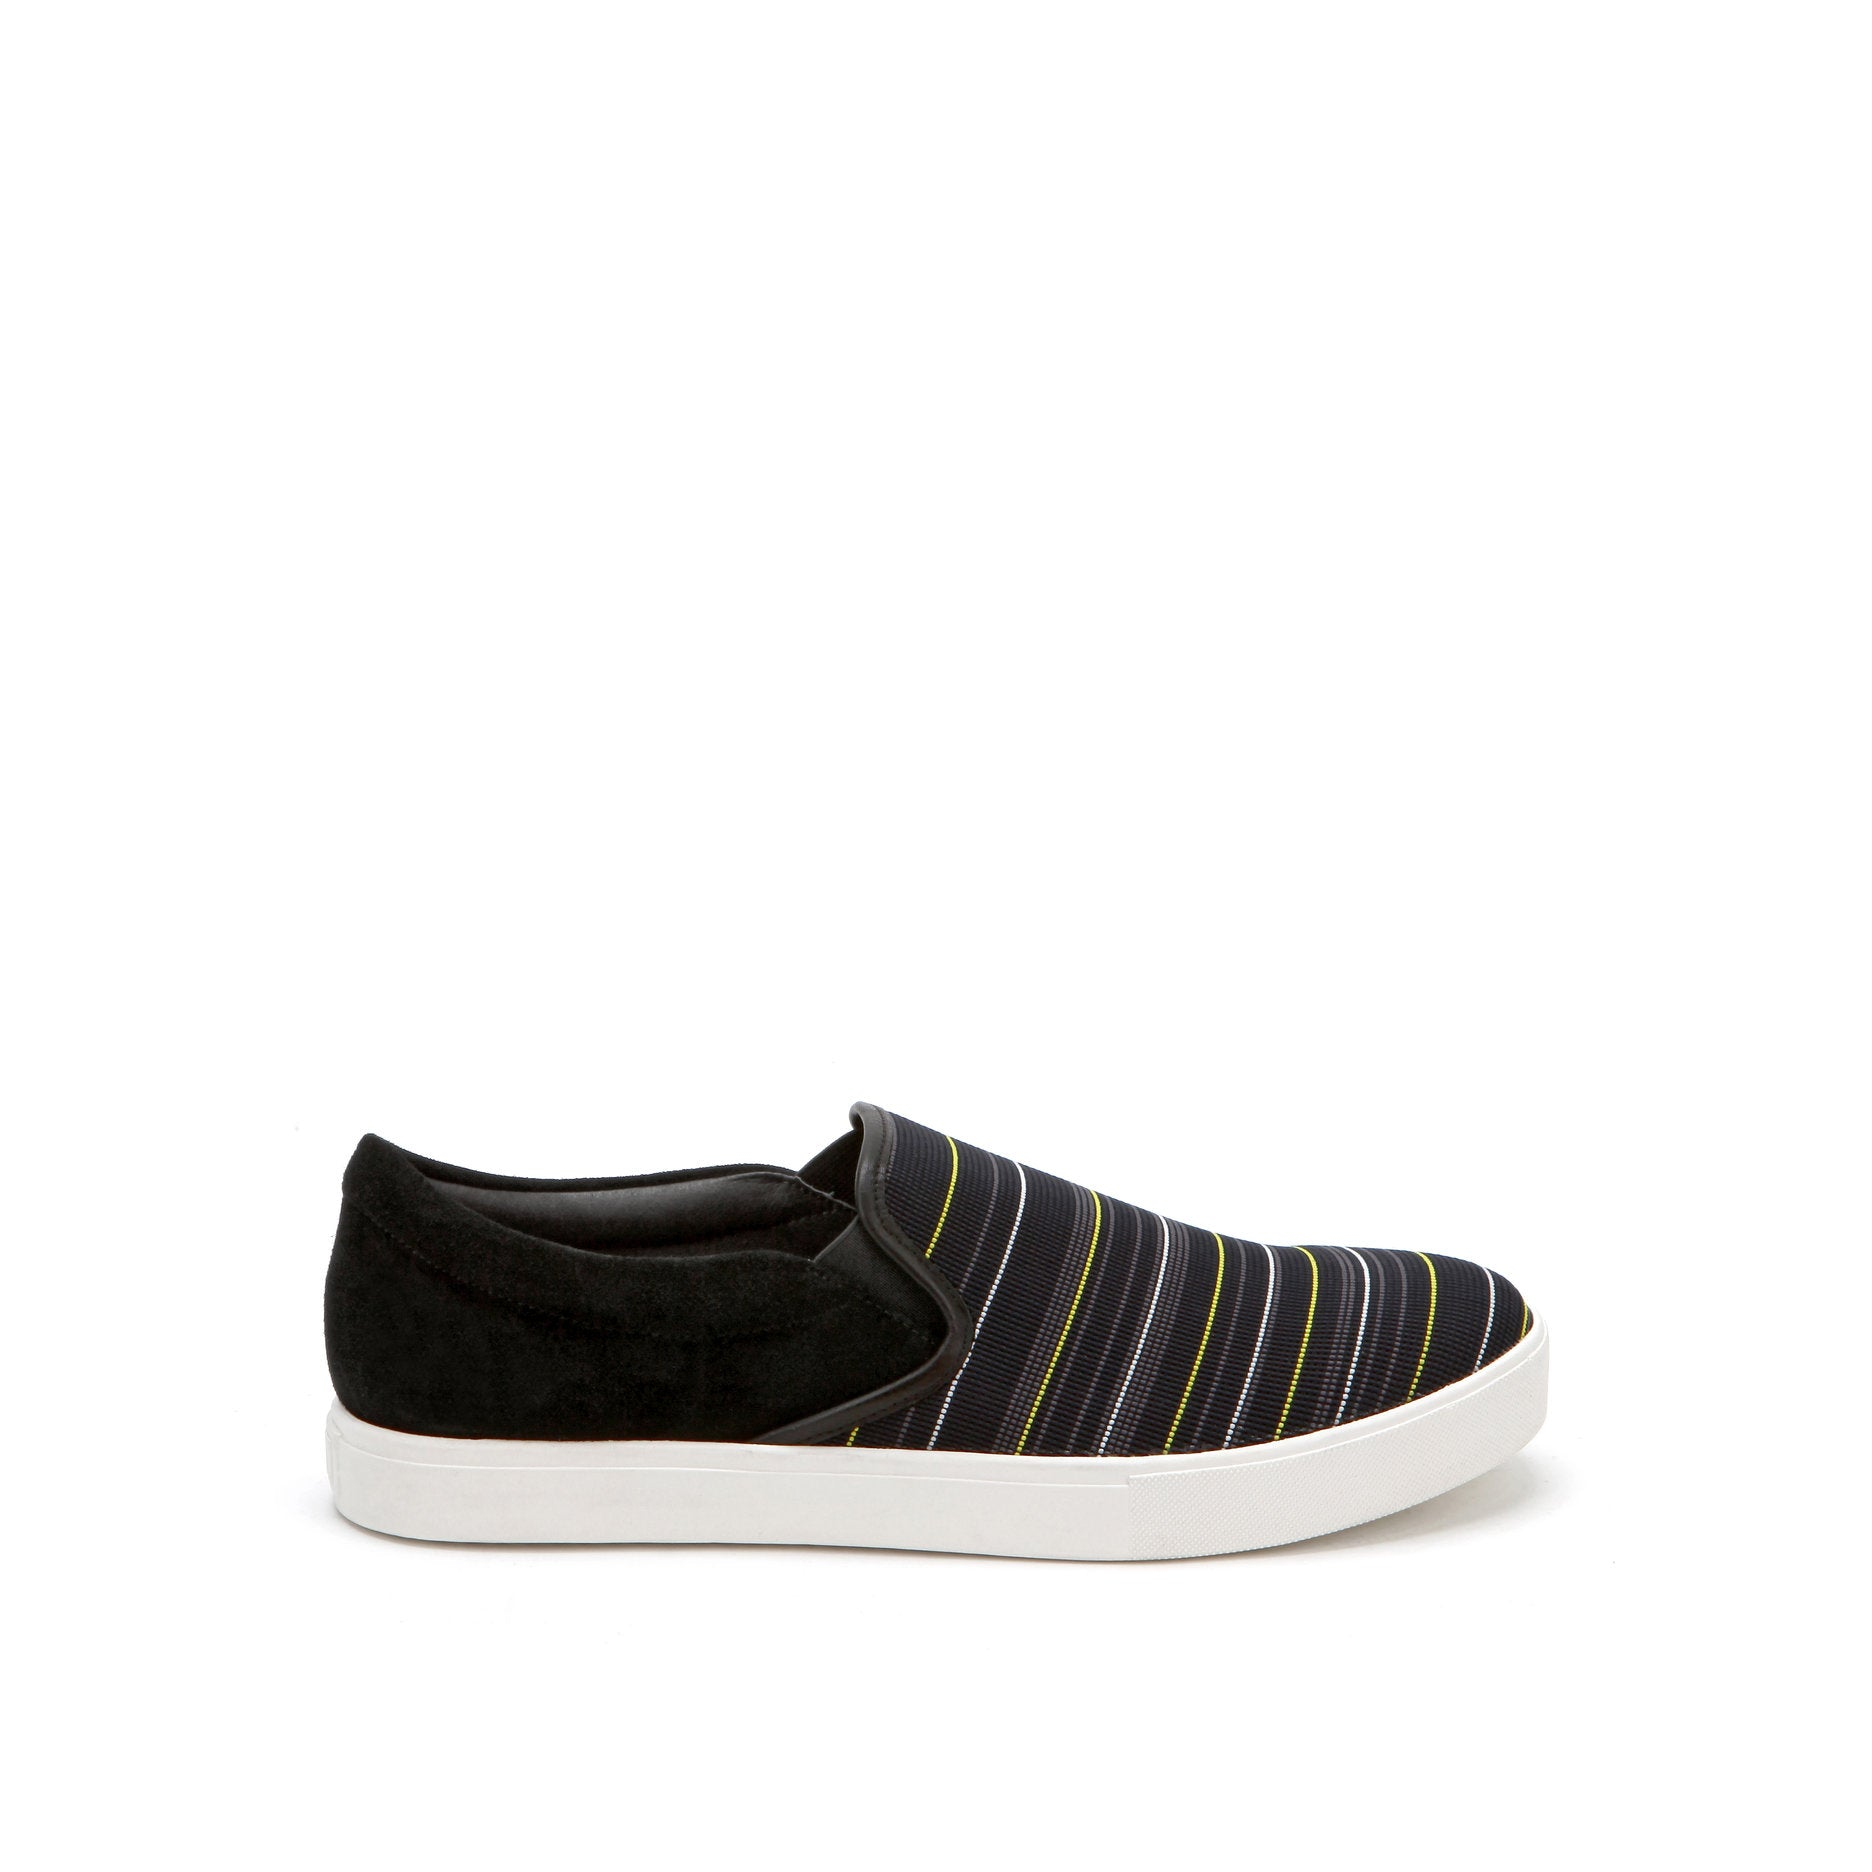 United Nude Slip On Night Drive Black Elastic